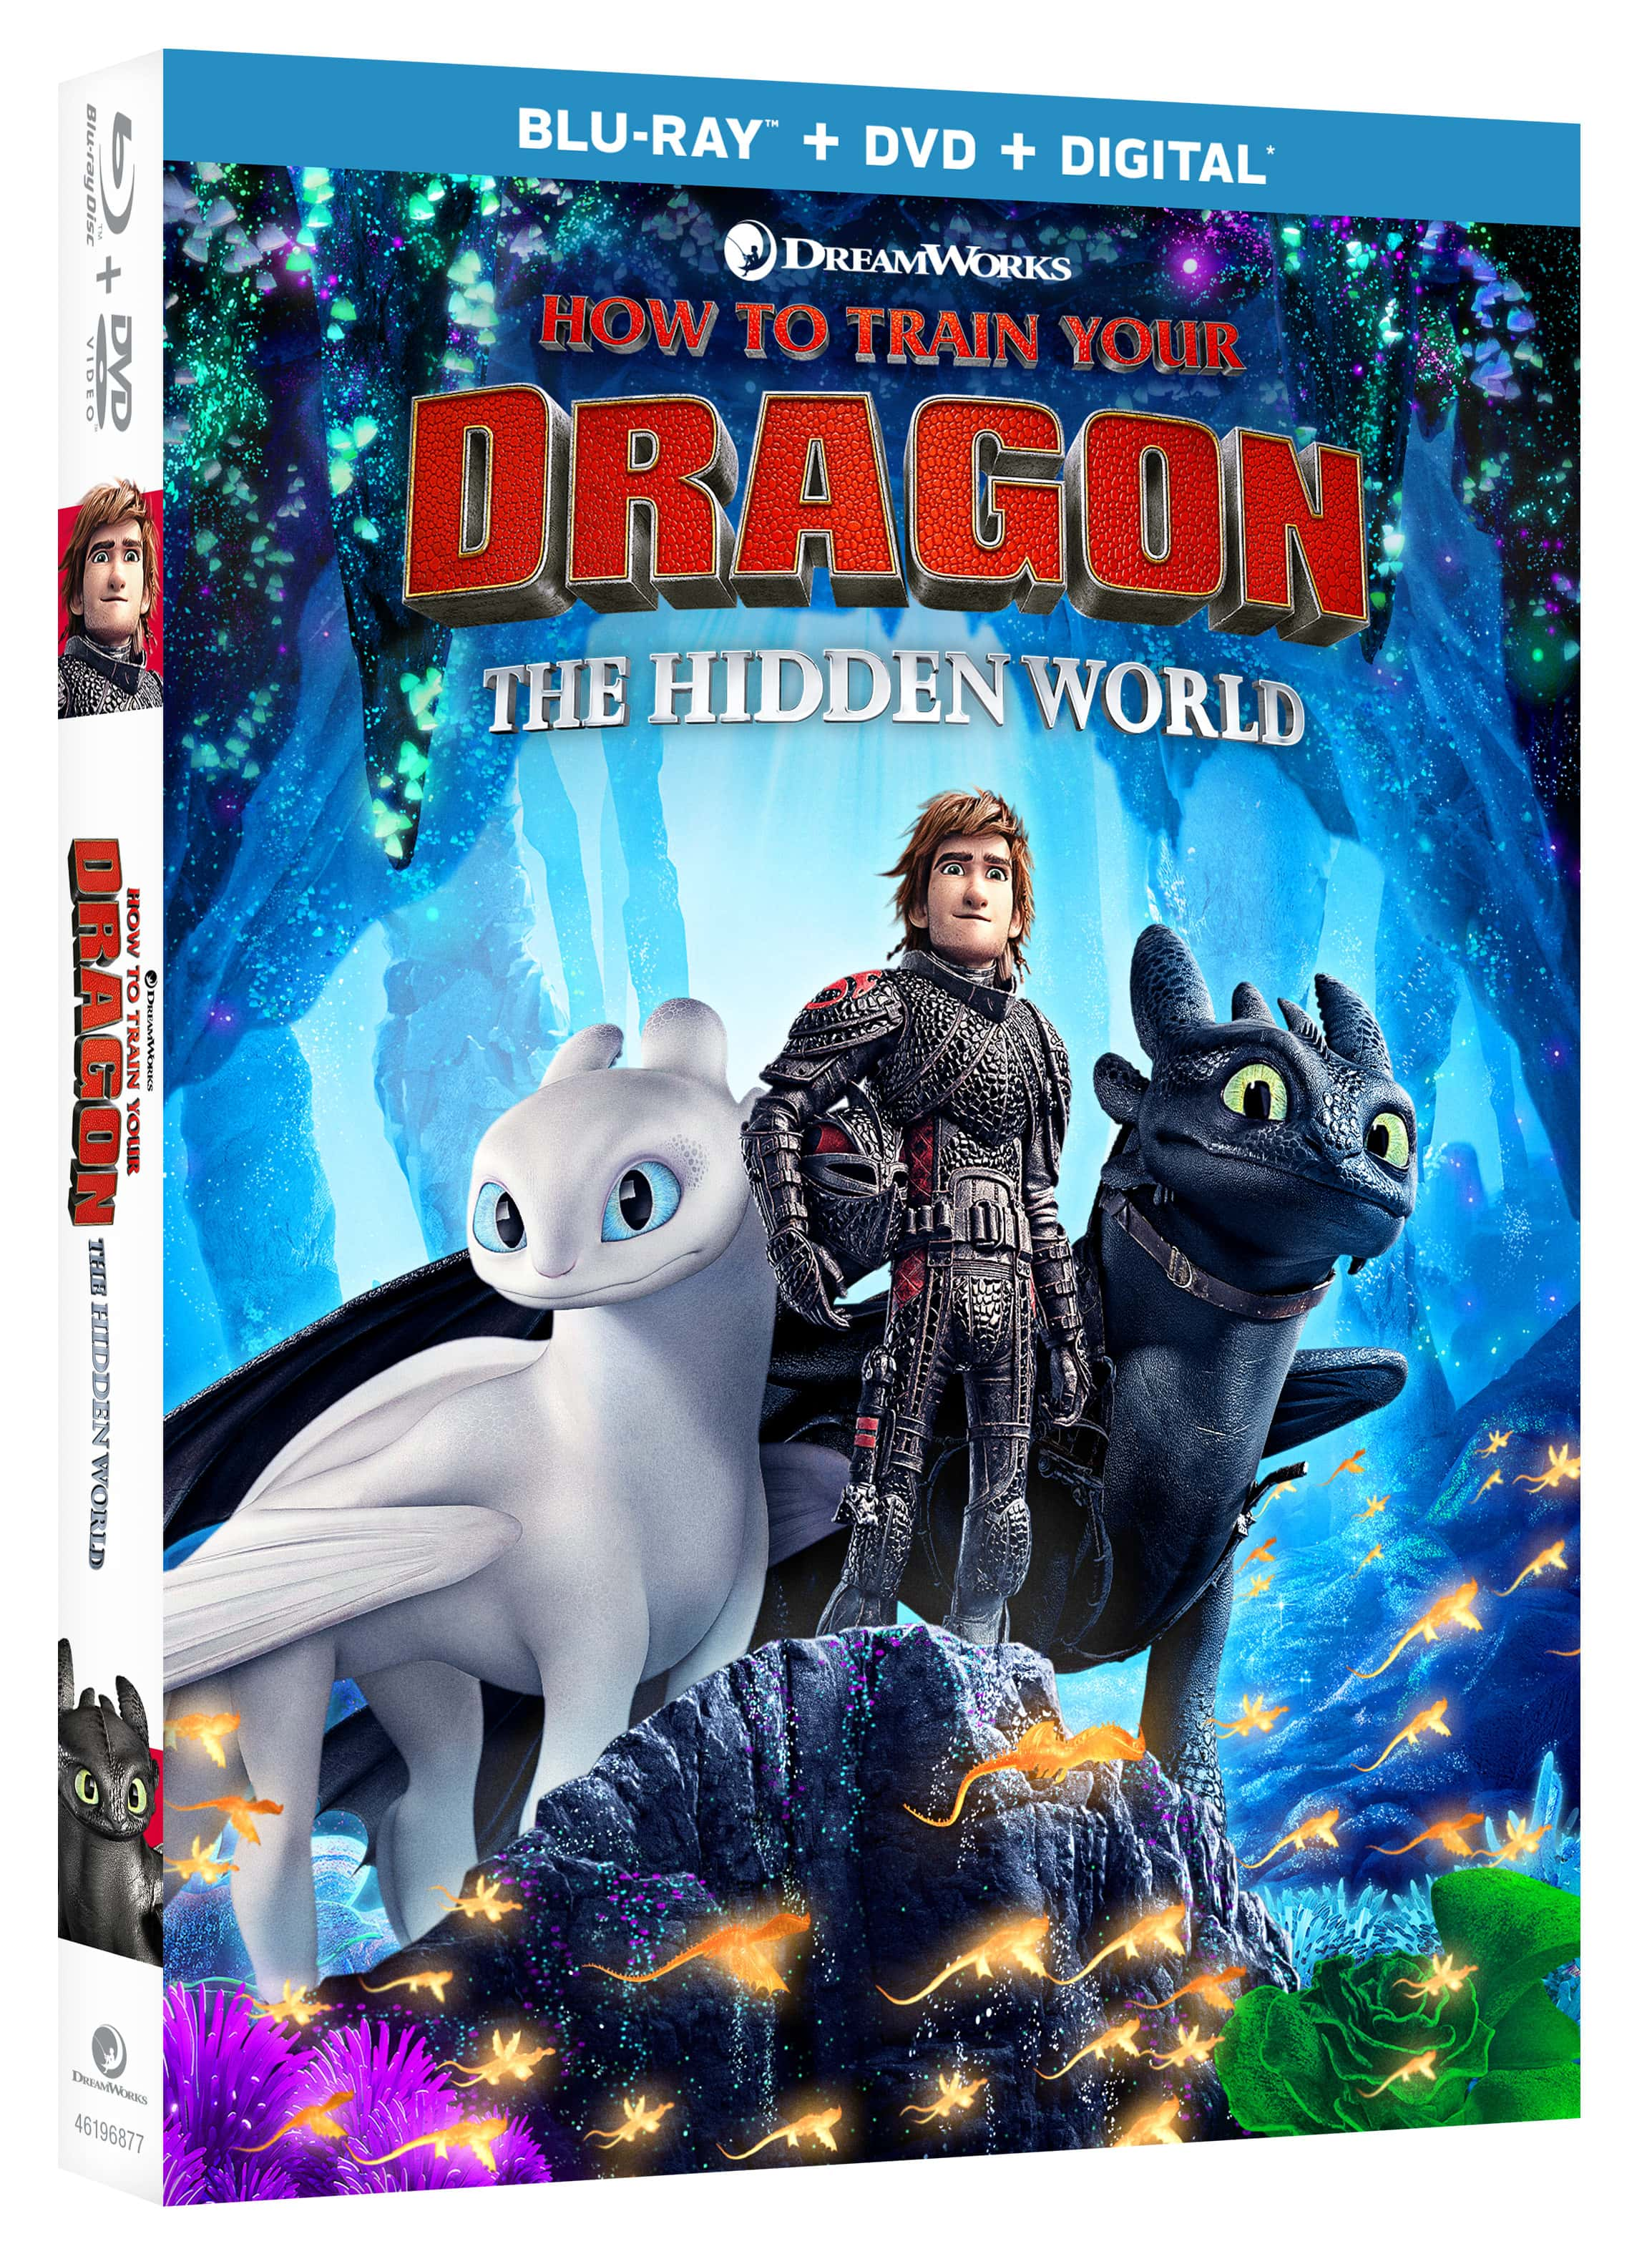 How To Train Your Dragon The Hidden World Blu-ray